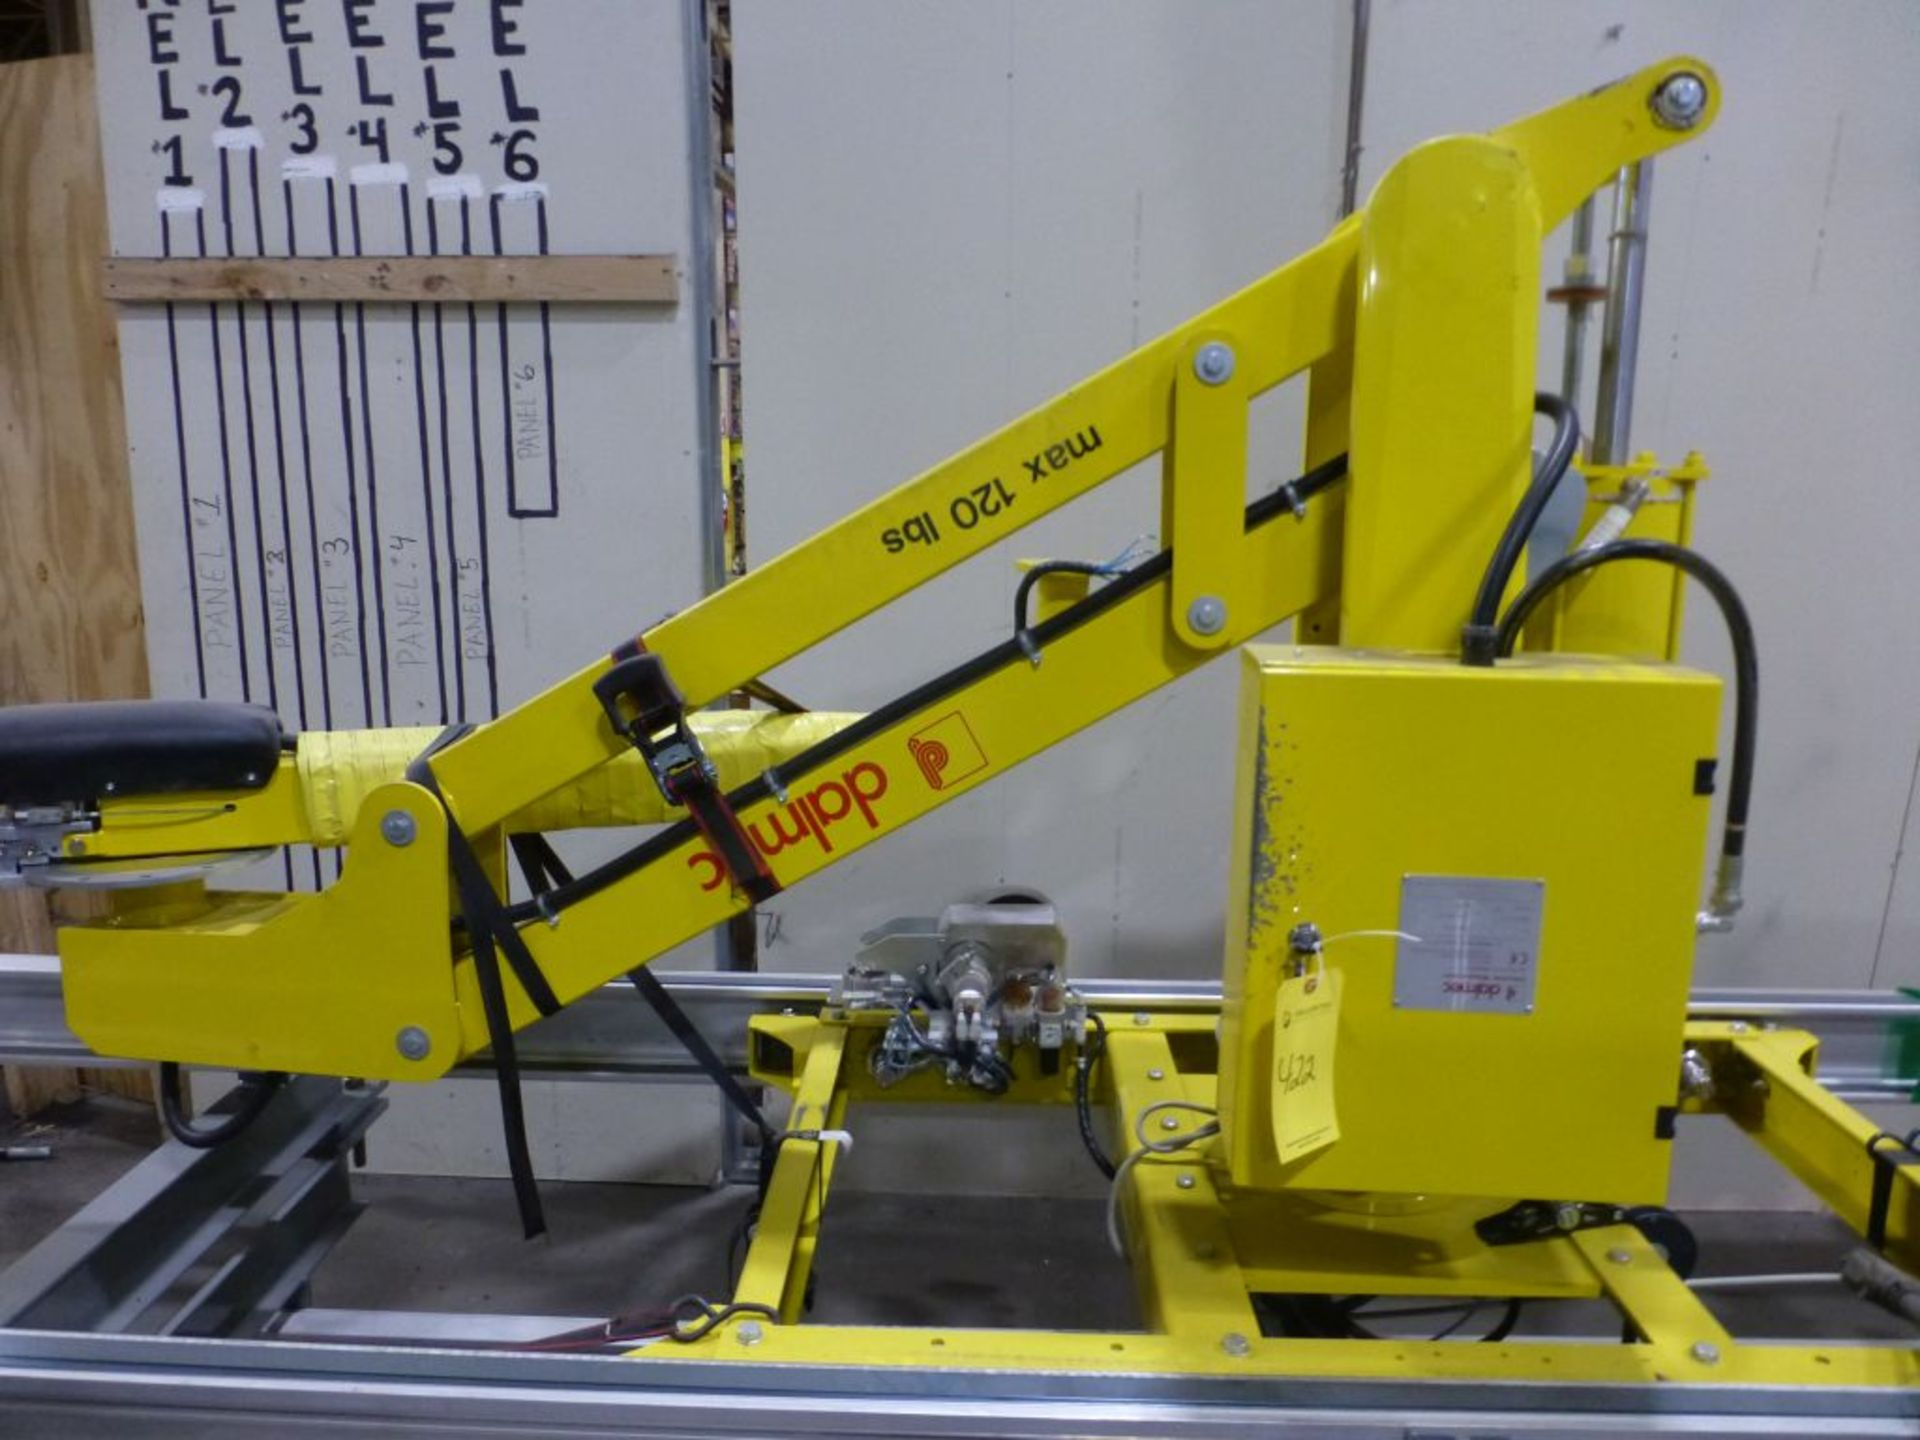 Dalmec Industrial Manipulator with Attachment | Type: PMS; Max Load 120 lbs; Pressure: .58 MPS; - Image 4 of 7